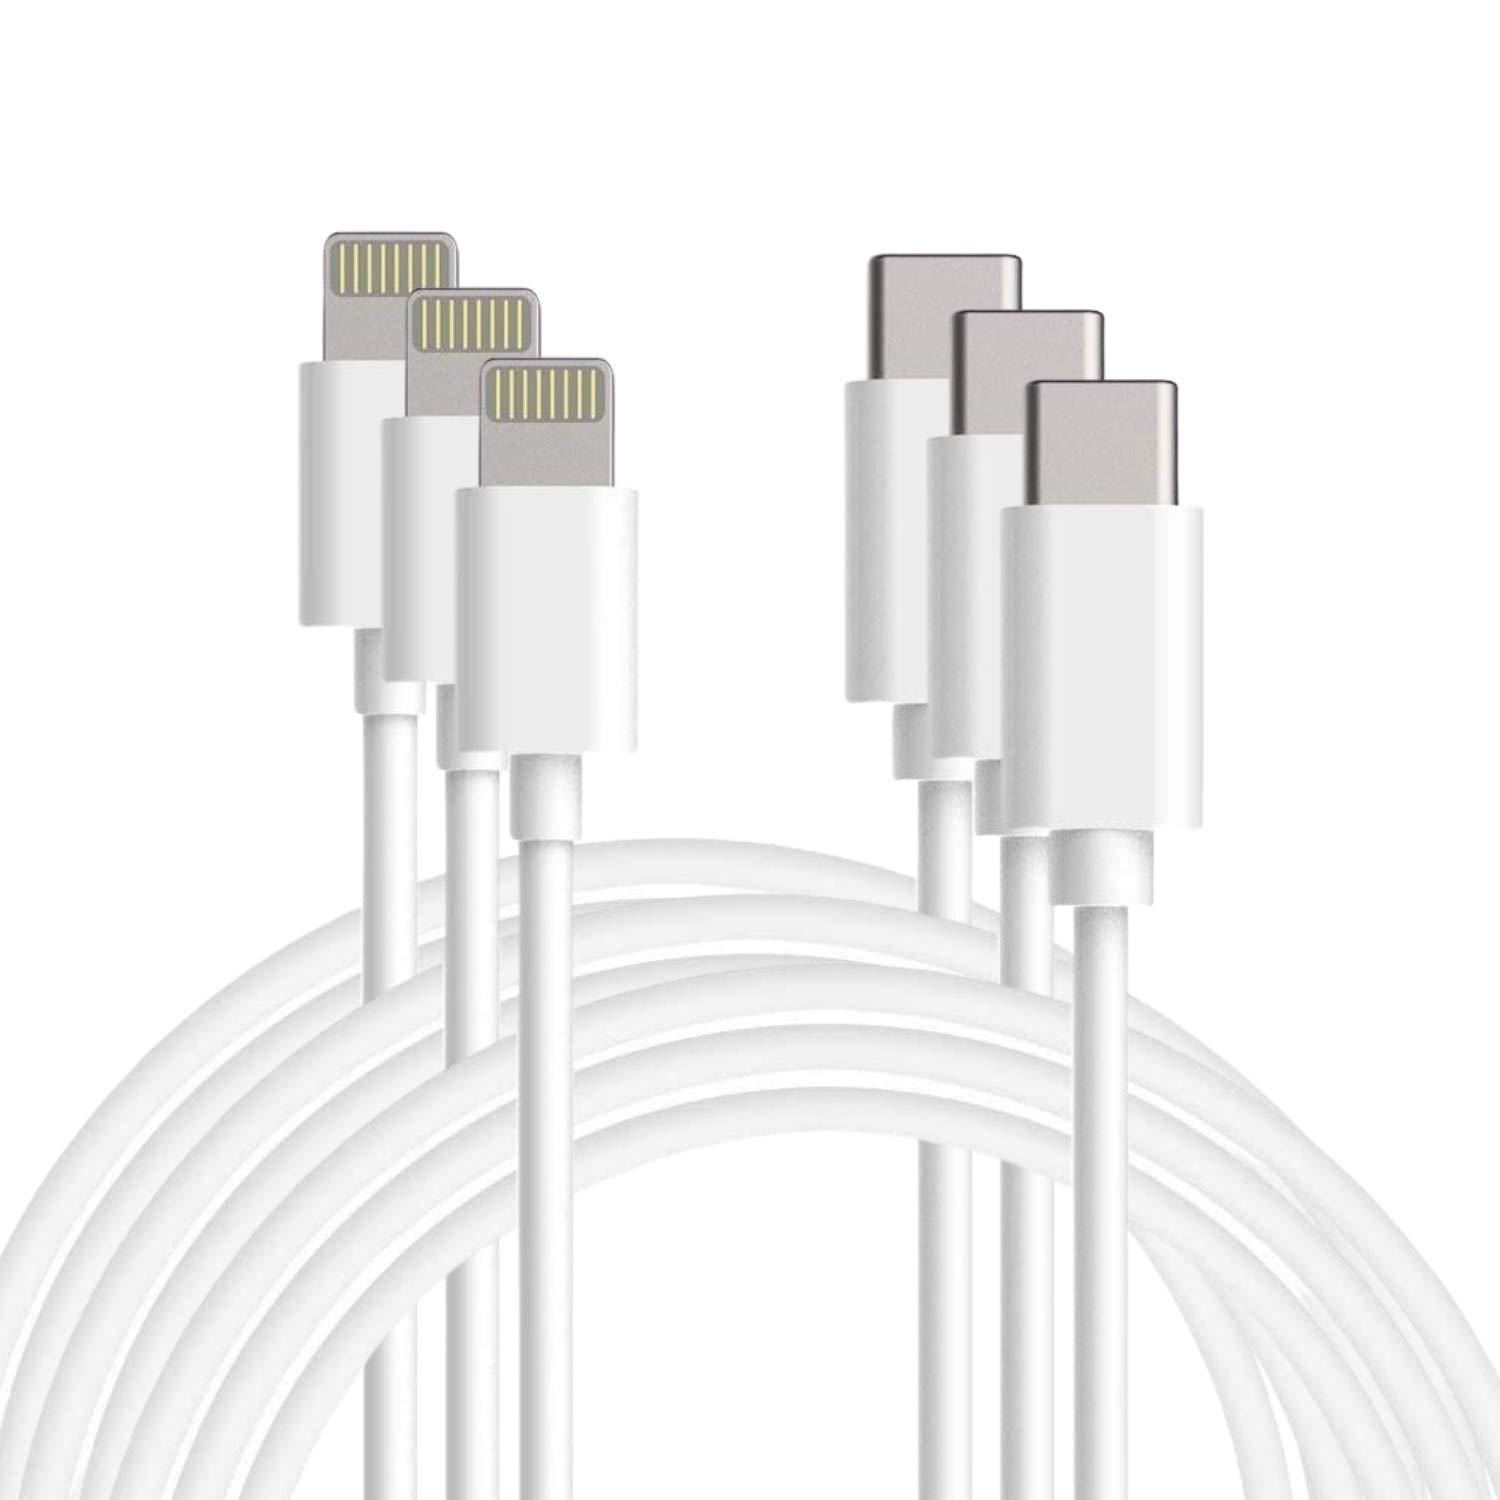 USB C to Lightning Cable 6 FT - Apple MFi Certified Lightning to USB-C Fast Charging Cable Compatible with iPhone 11/11 Pro/11 Pro Max/X/XS/XR/XS/8/8 Plus, Supports Power, Sync, Made to Last (3 Pack)